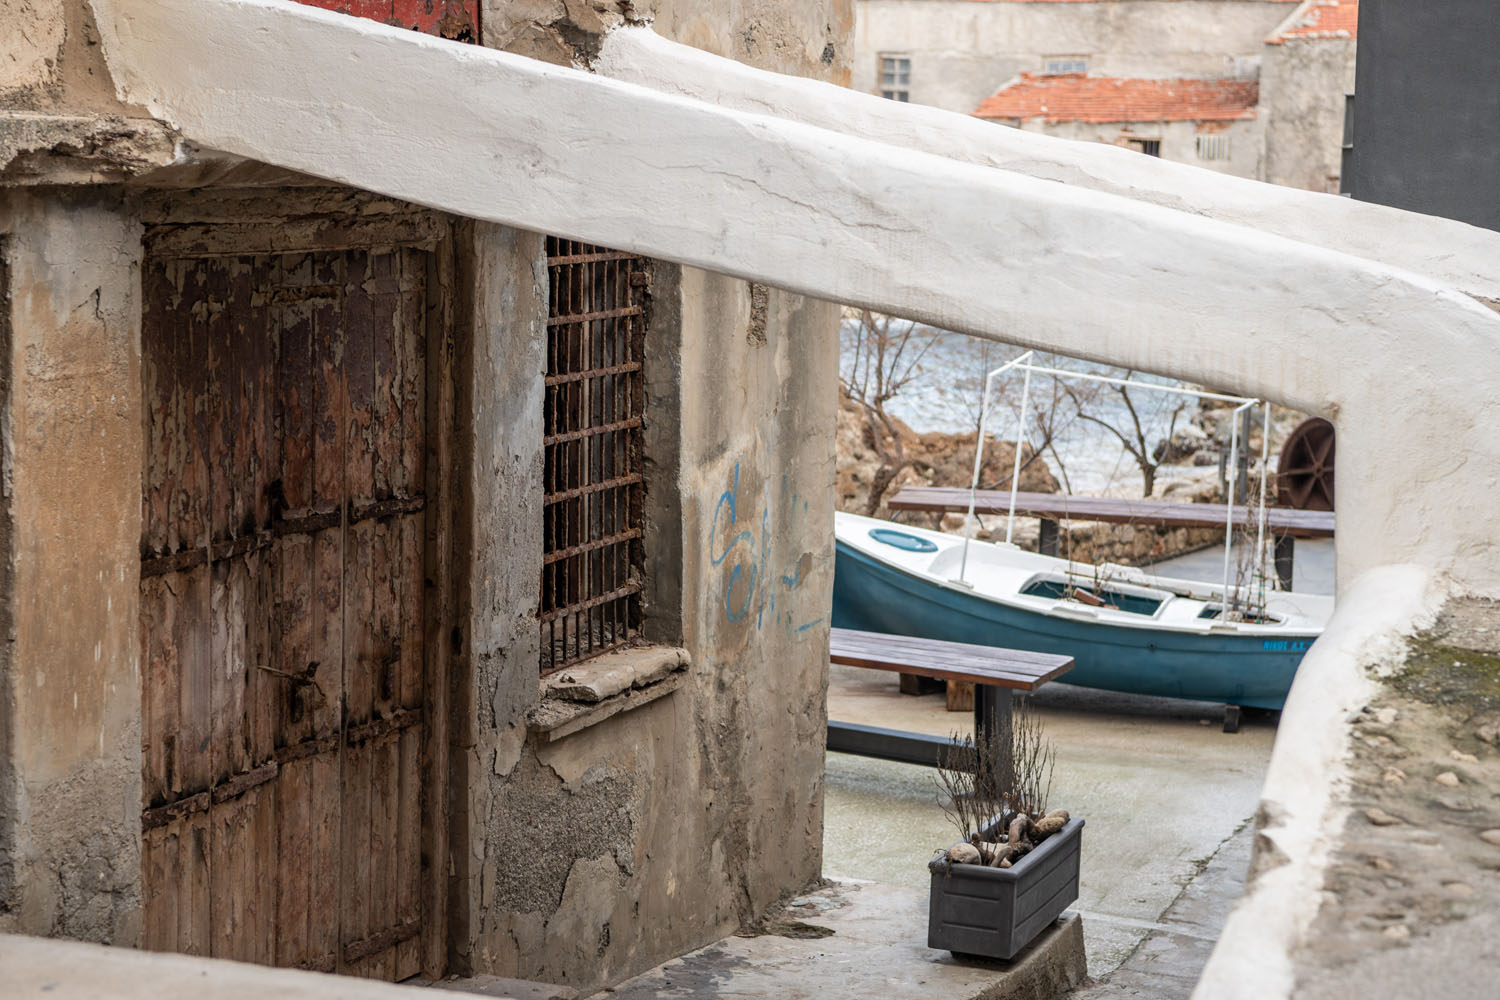 boat at an alley in tabakaria